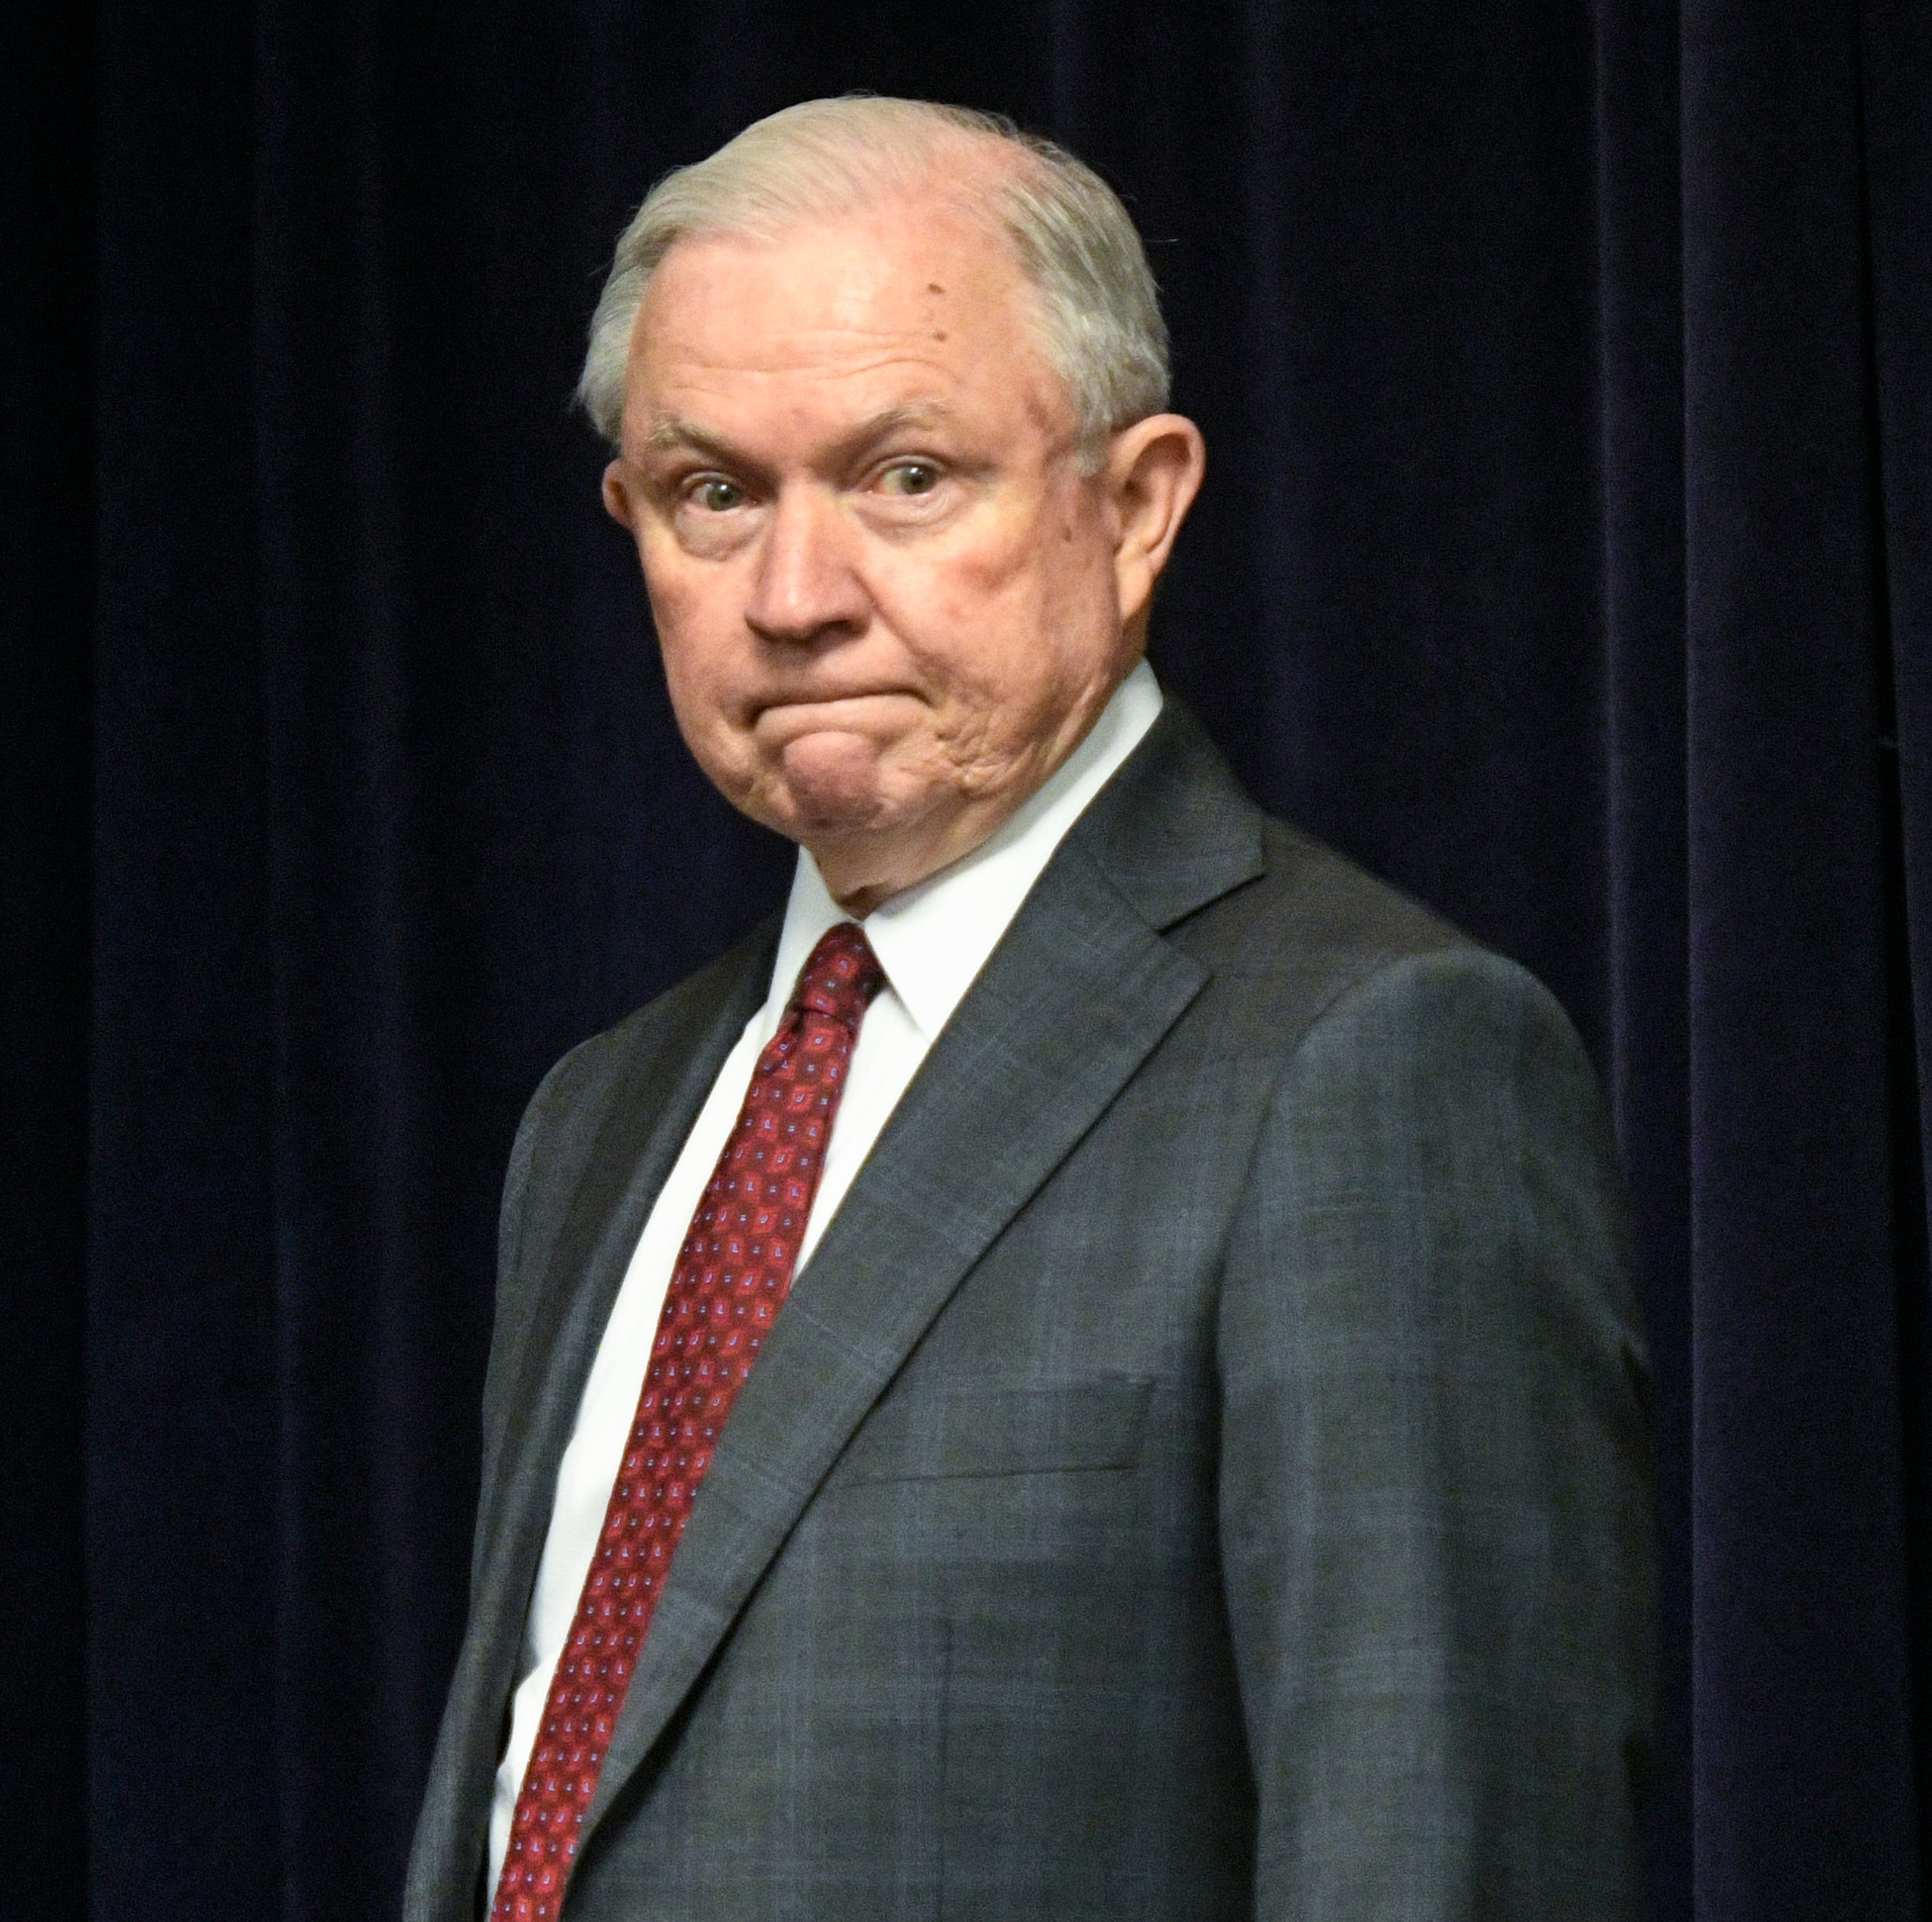 Attorney General Jeff Sessions is pictured before delivering remarks on efforts to combat violent crime in America during an appearance at the United States Attorney's Office for the Middle District of Georgia on Thursday August 9, 2018, in Macon, Ga.